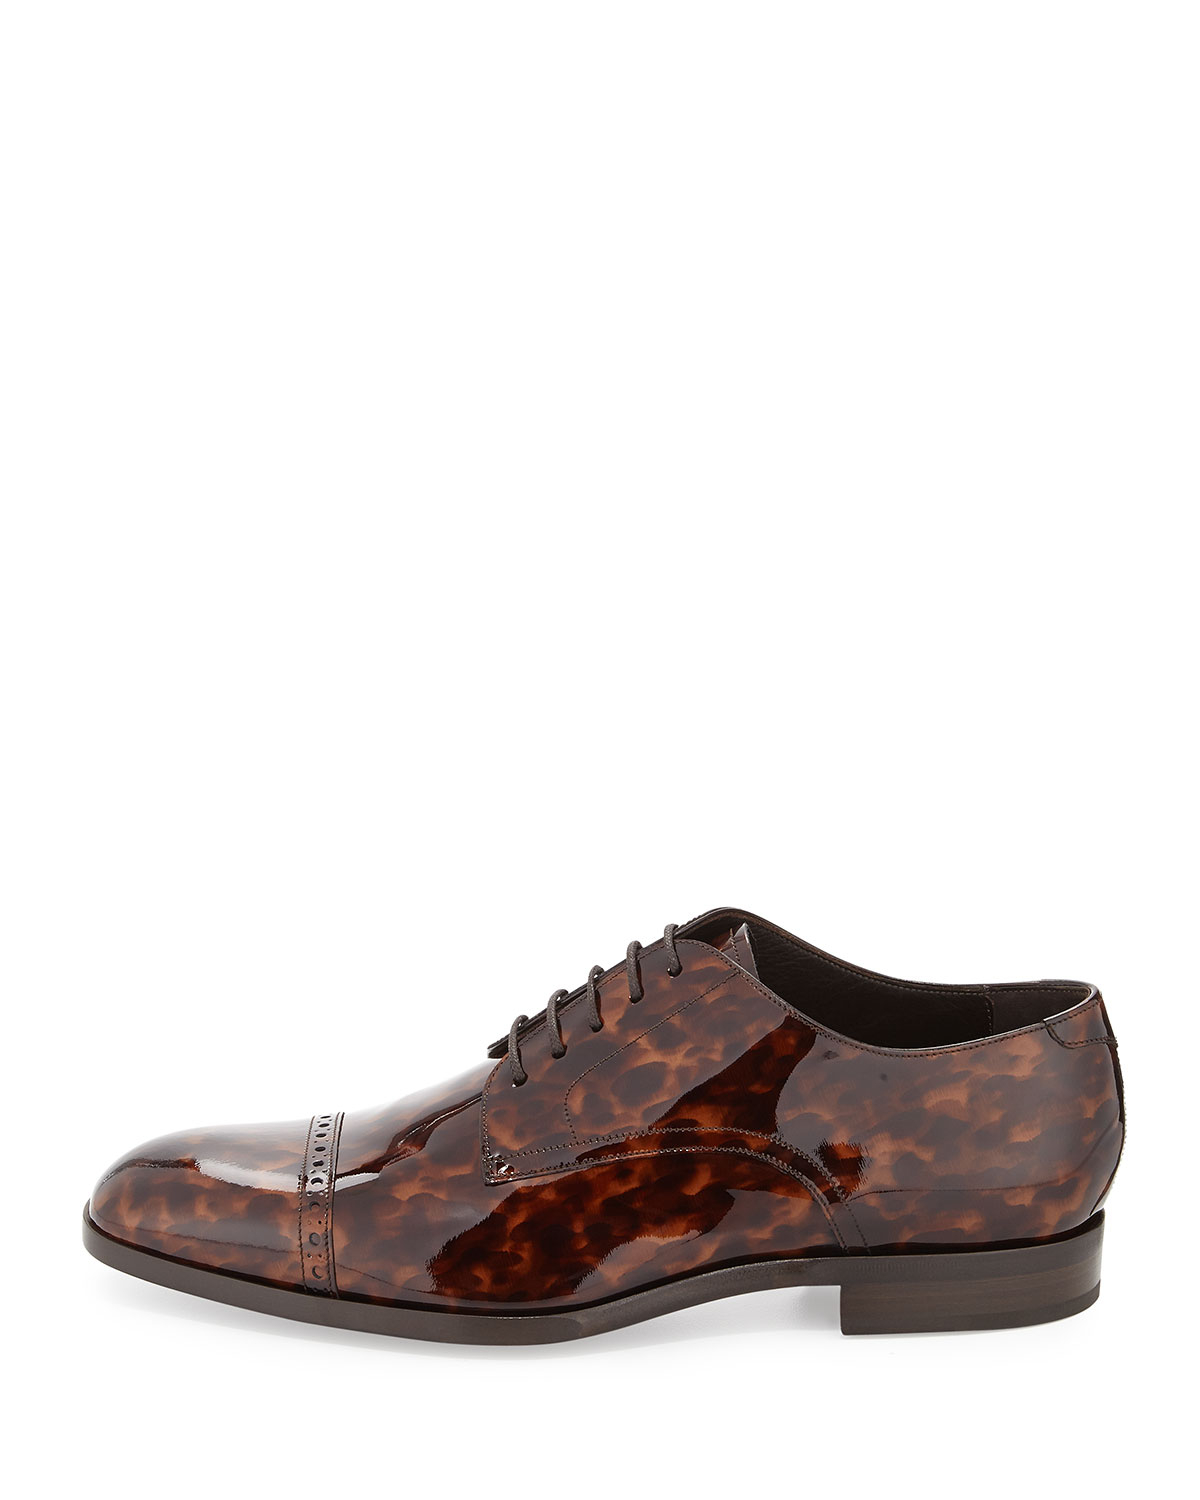 jimmy choo prescott turtle patent leather lace up shoe in